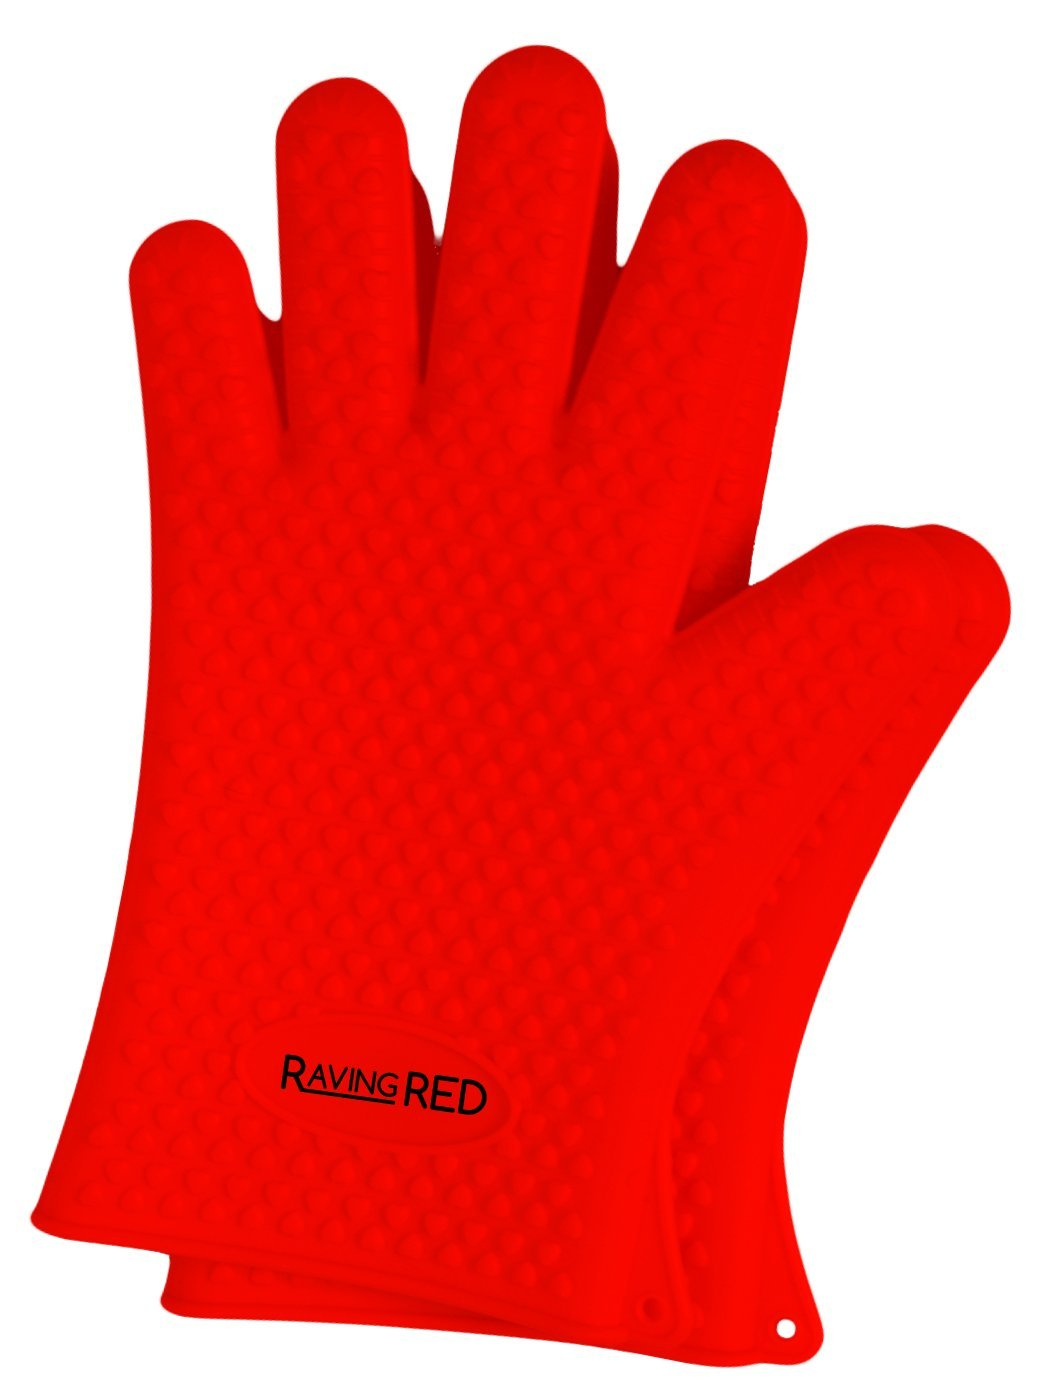 Raving Red Ultimate Protective Heat Resistant & Waterproof Silicone BBQ Grill Gloves